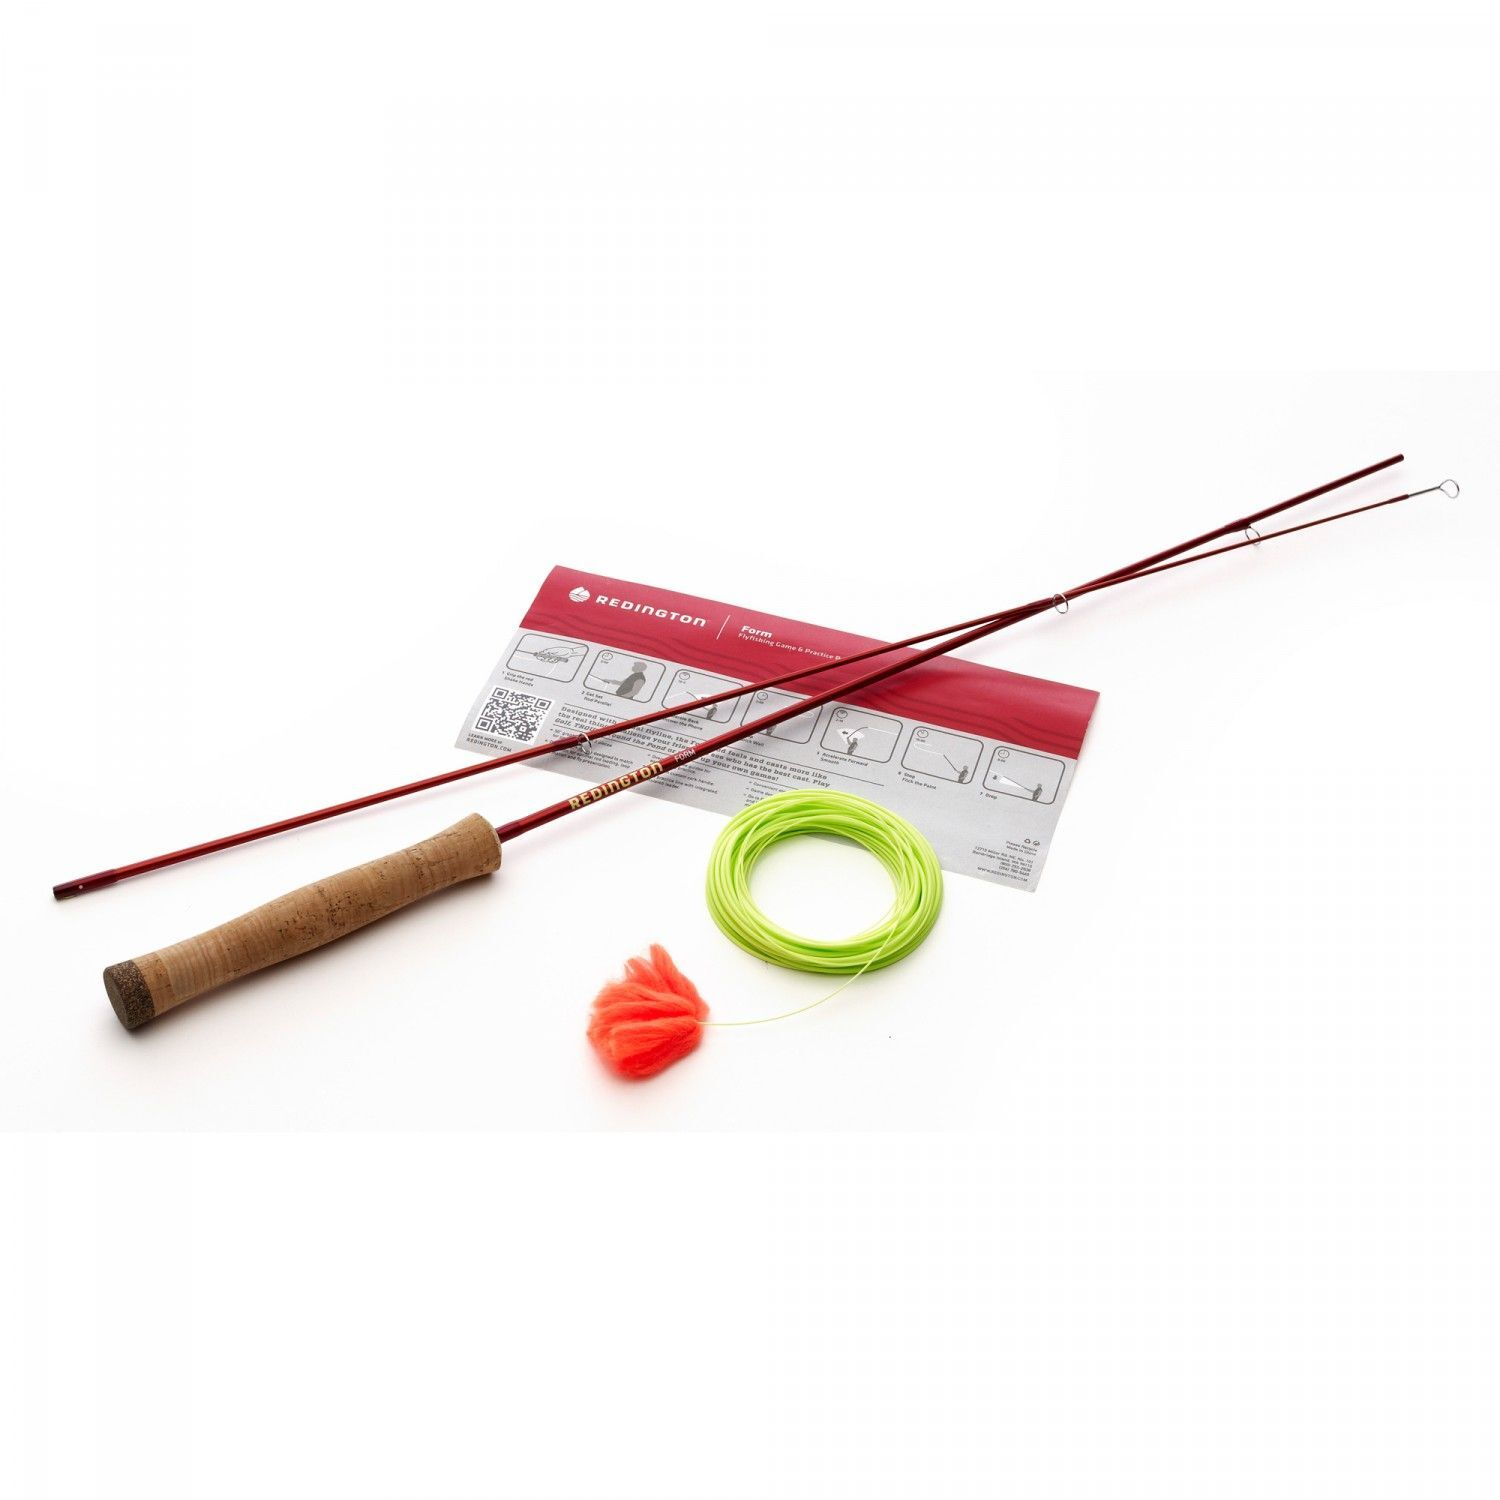 NEW rossoINGTON FORM GAME GAME GAME ROD LAVA fly fishing casting practice learning 1a7c78